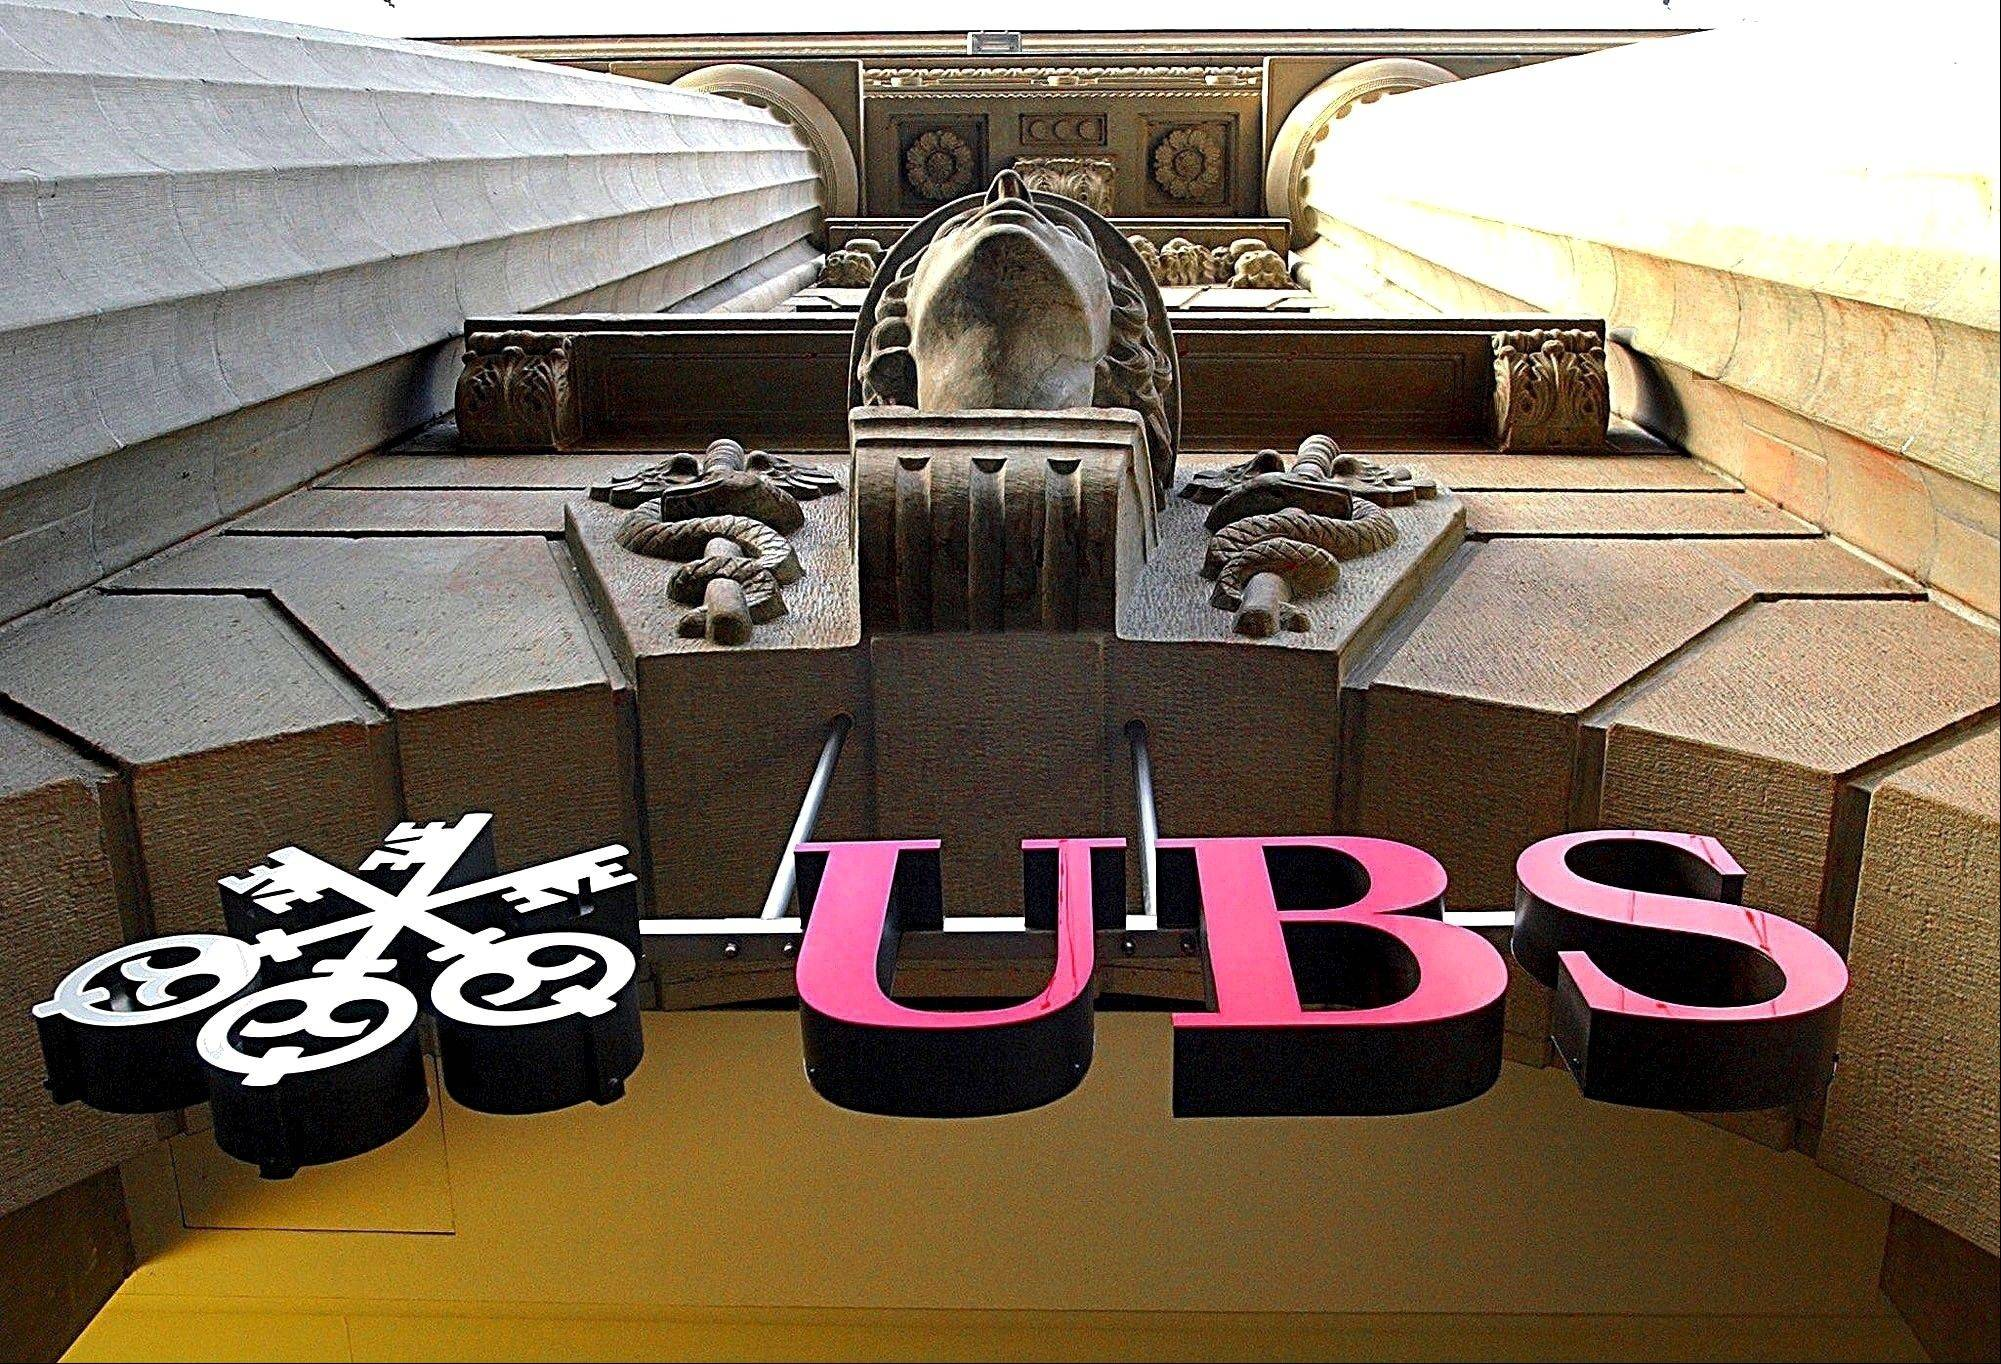 Swiss bank UBS announced Wednesday it will pay $ 1.53 billion in fines to resolve investigations that it helped manipulate the benchmark LIBOR interest rate.